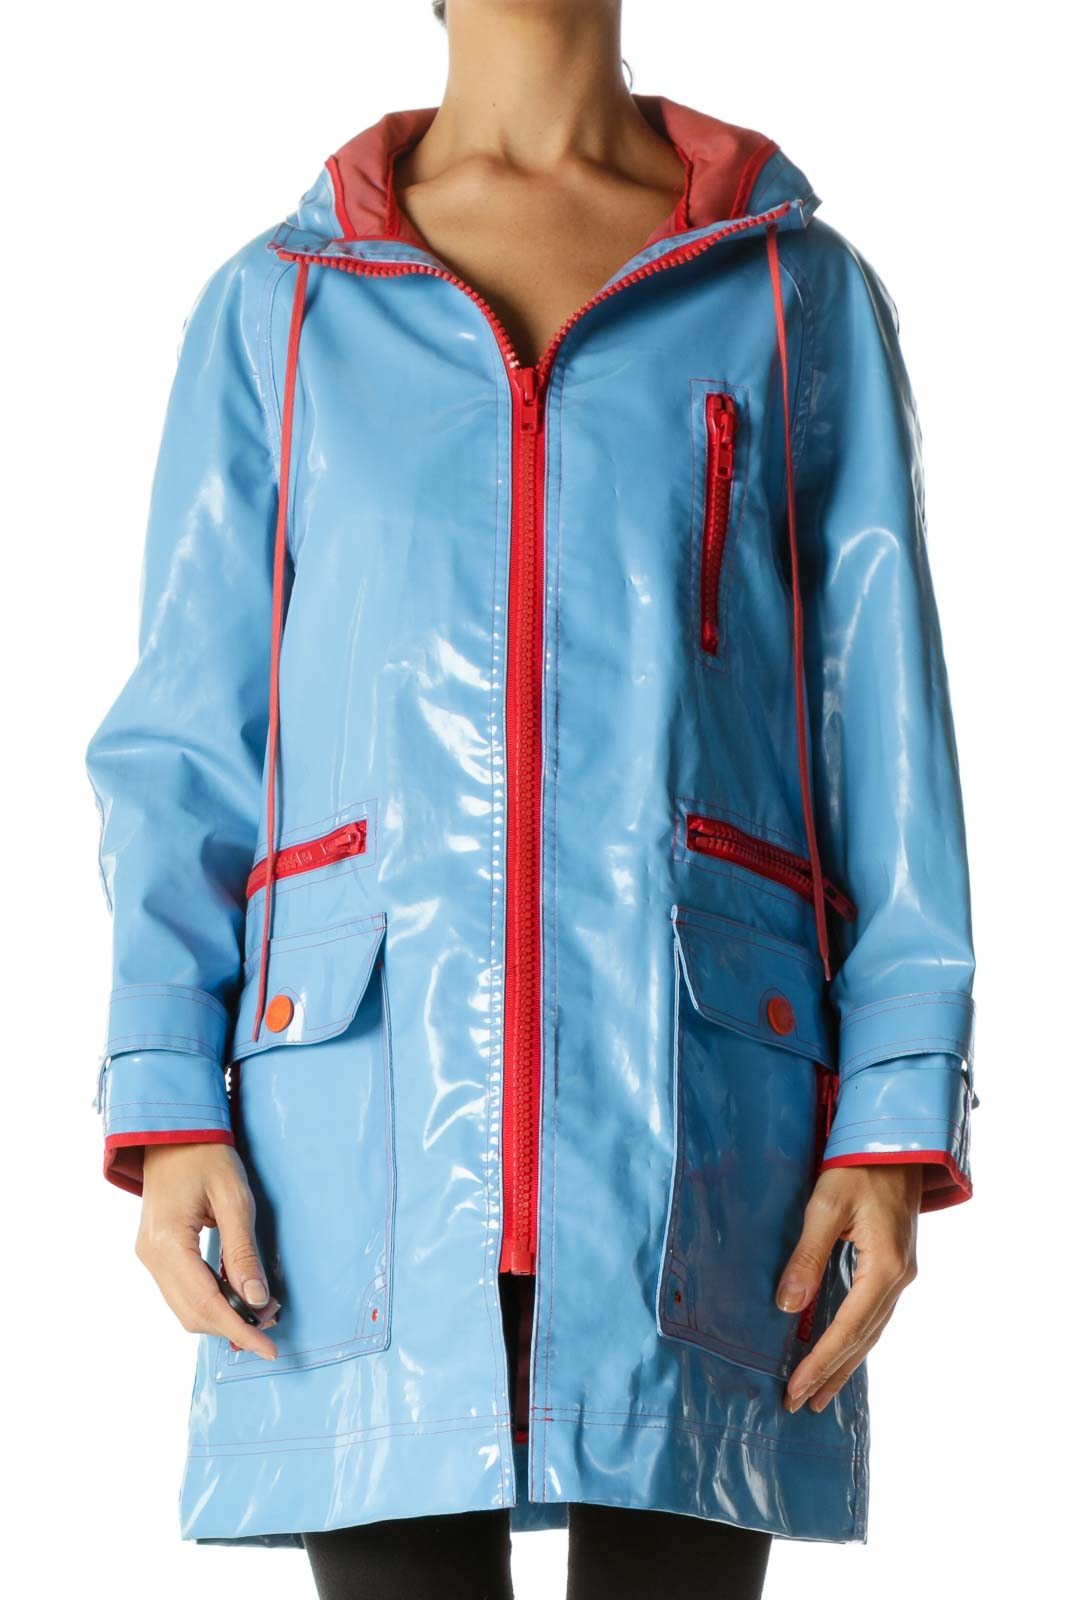 Blue Orange-Red Multi-Zippers Hooded Drawstring Weighted Rain Coat